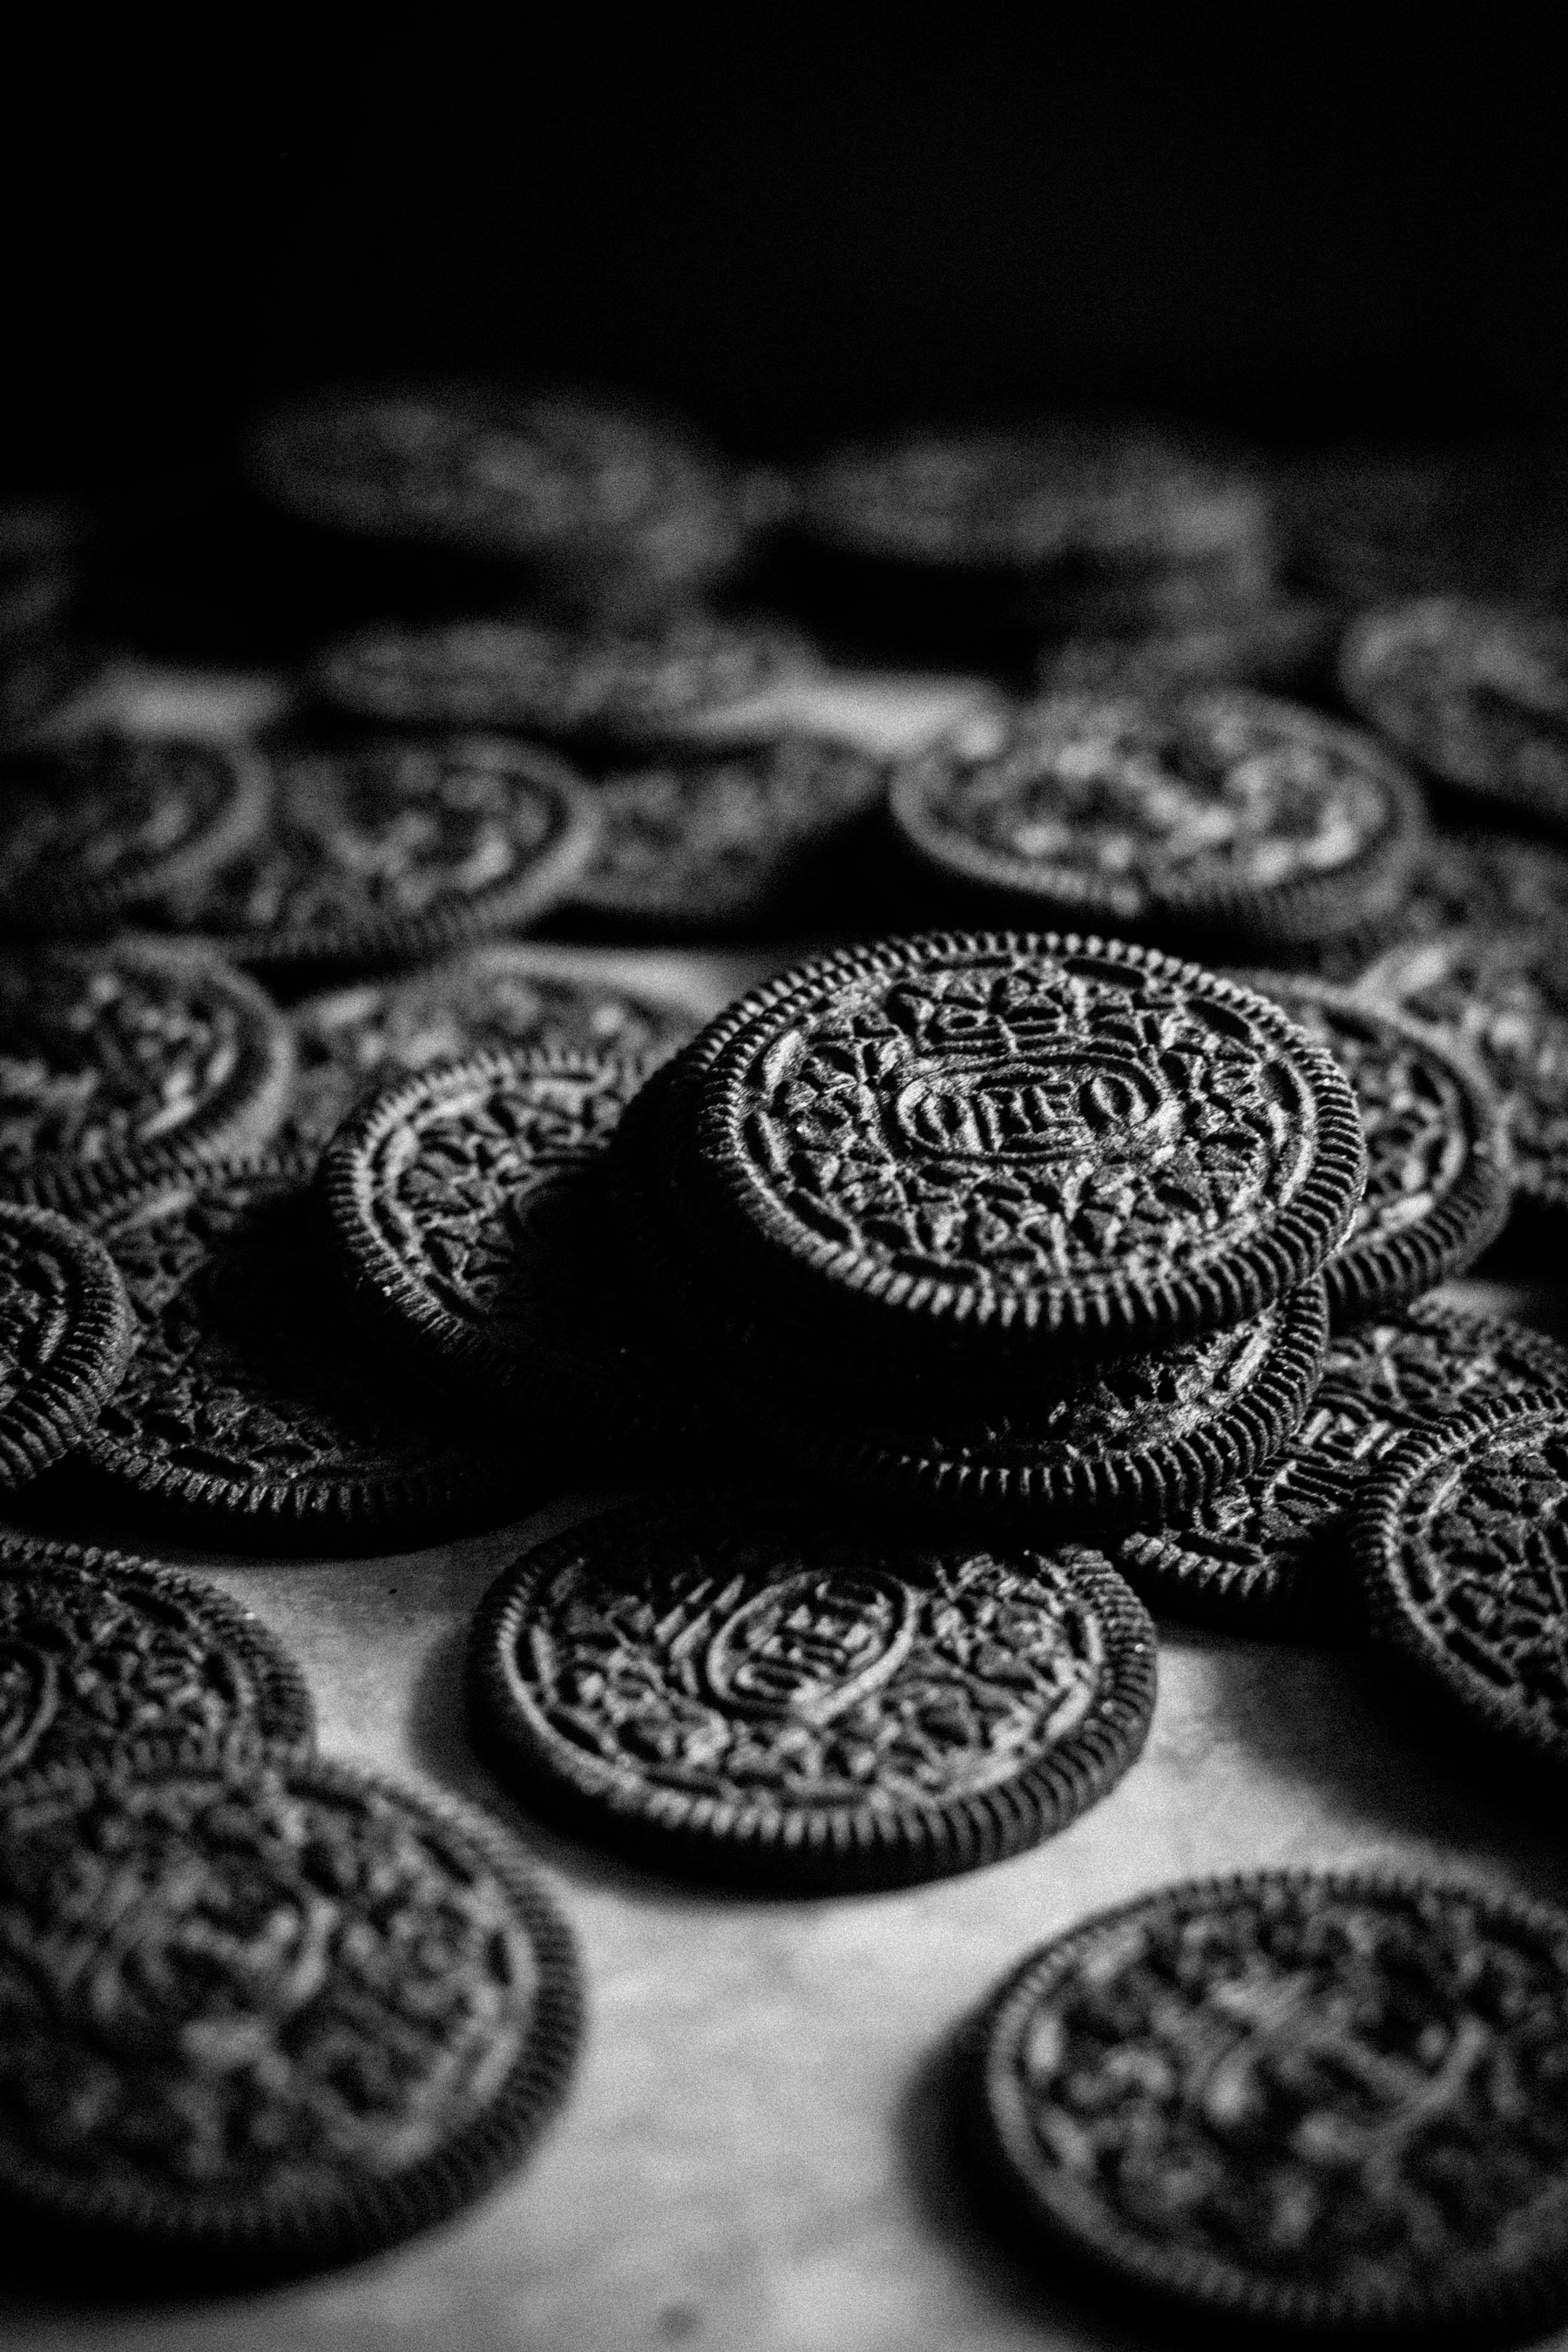 Oreos halves by Sam Henderson of Today's Nest